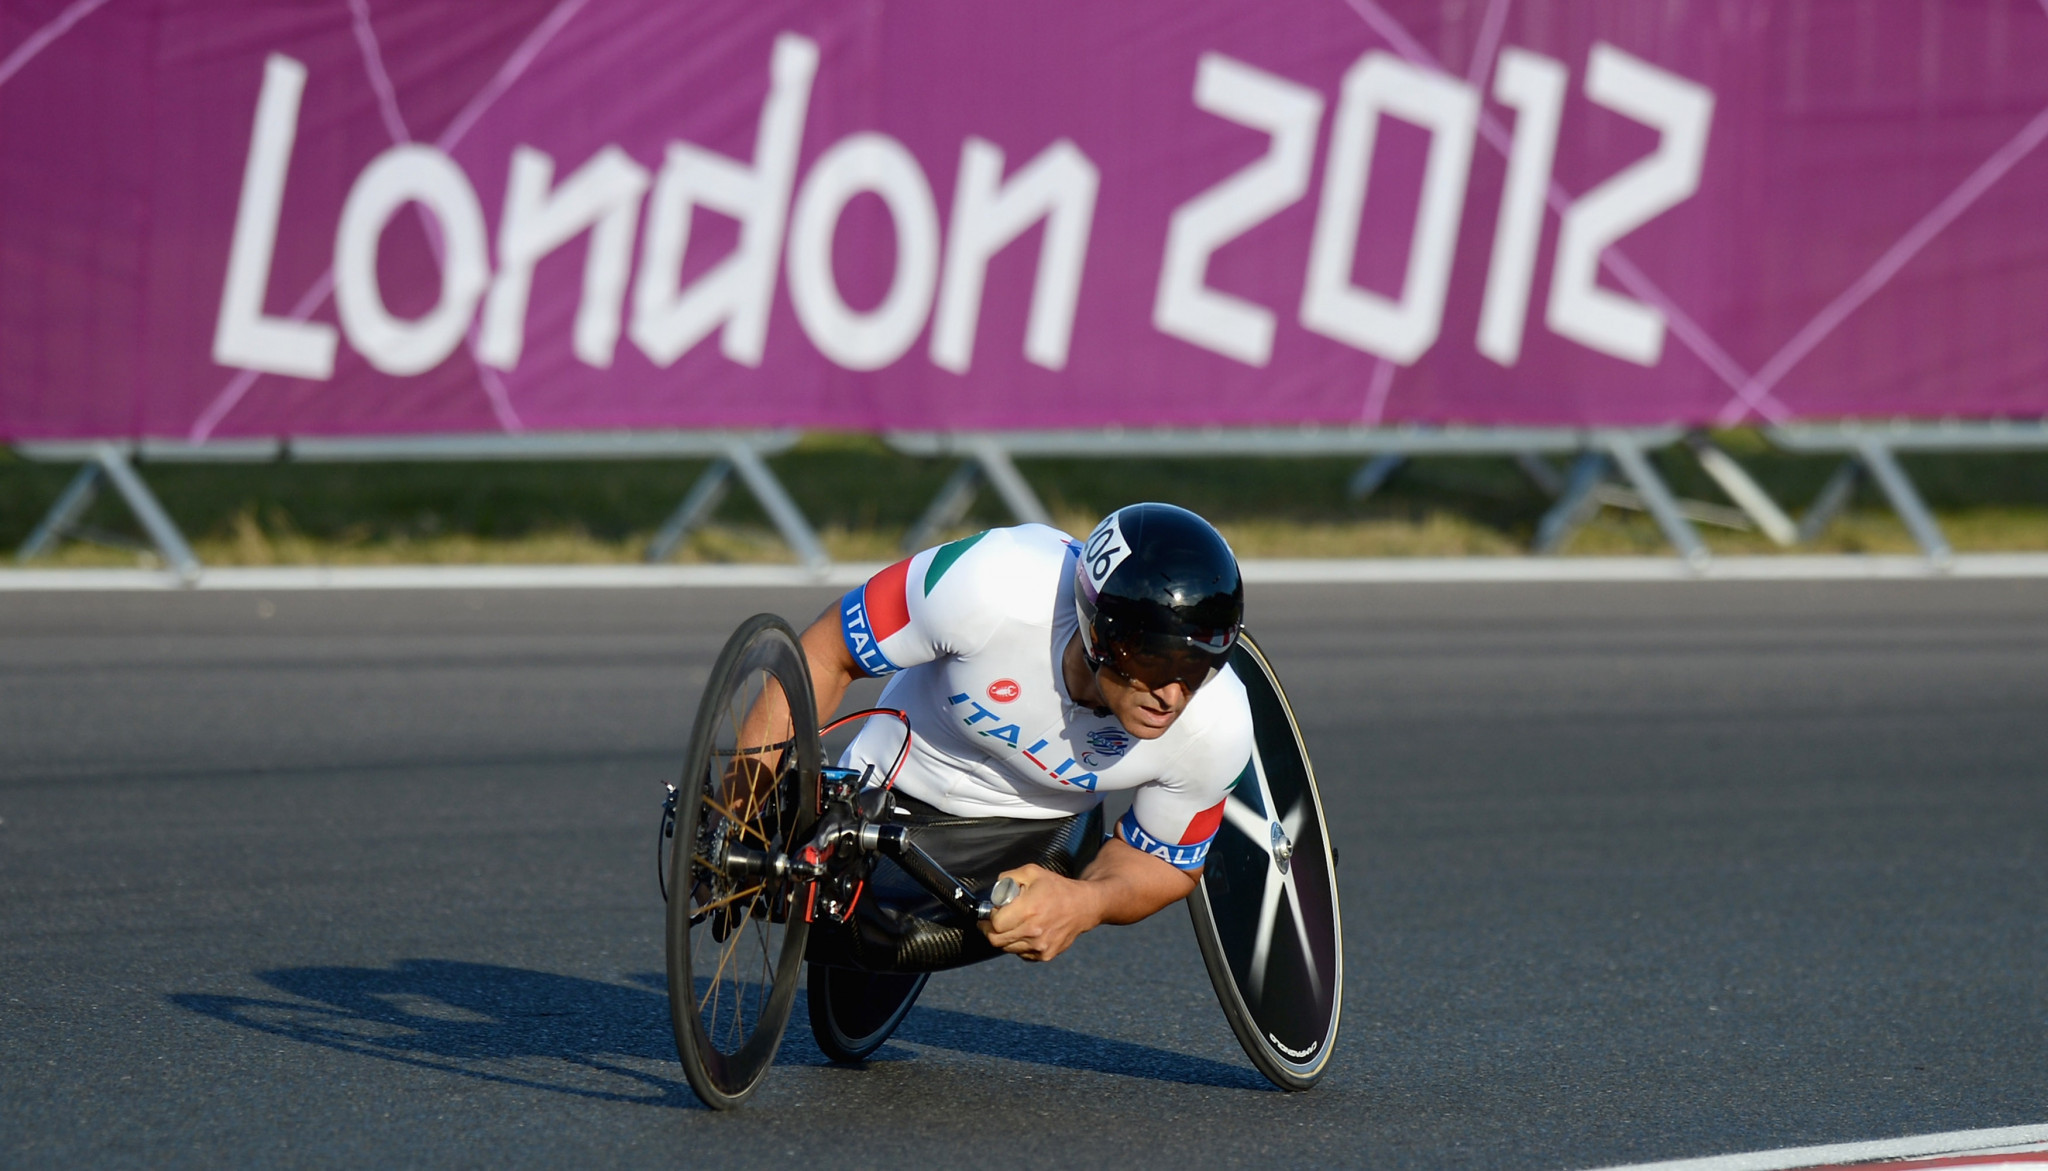 Following an accident which saw him lose both legs, Alex Zanardi took up handcycling and competed at London 2012 and Rio 2016, winning six medals, including four gold ©Getty Images